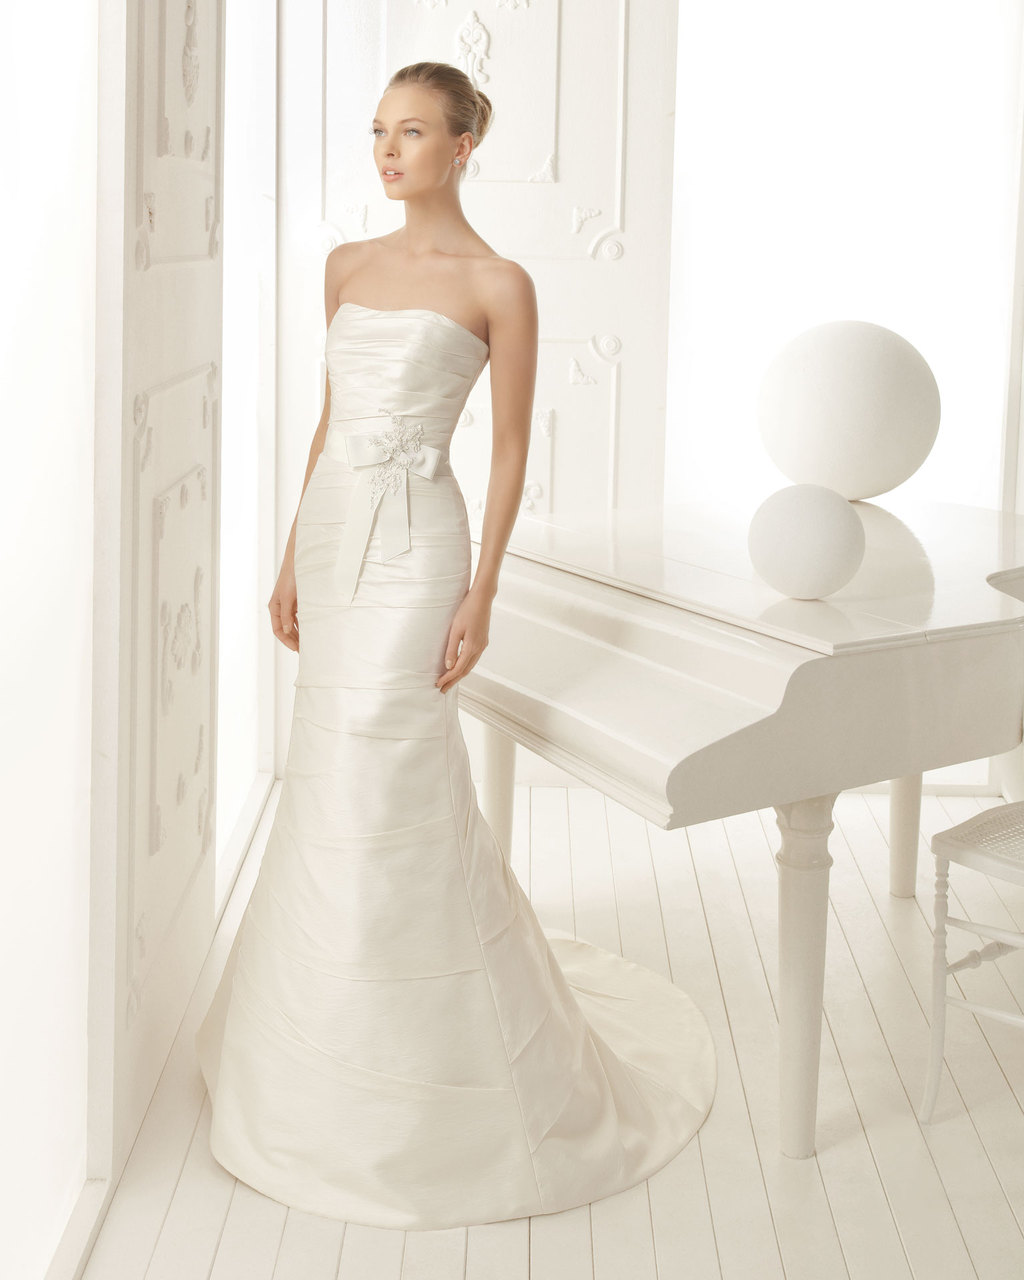 Aire-barcelona-wedding-dress-2013-vintage-bridal-collection-valery.full